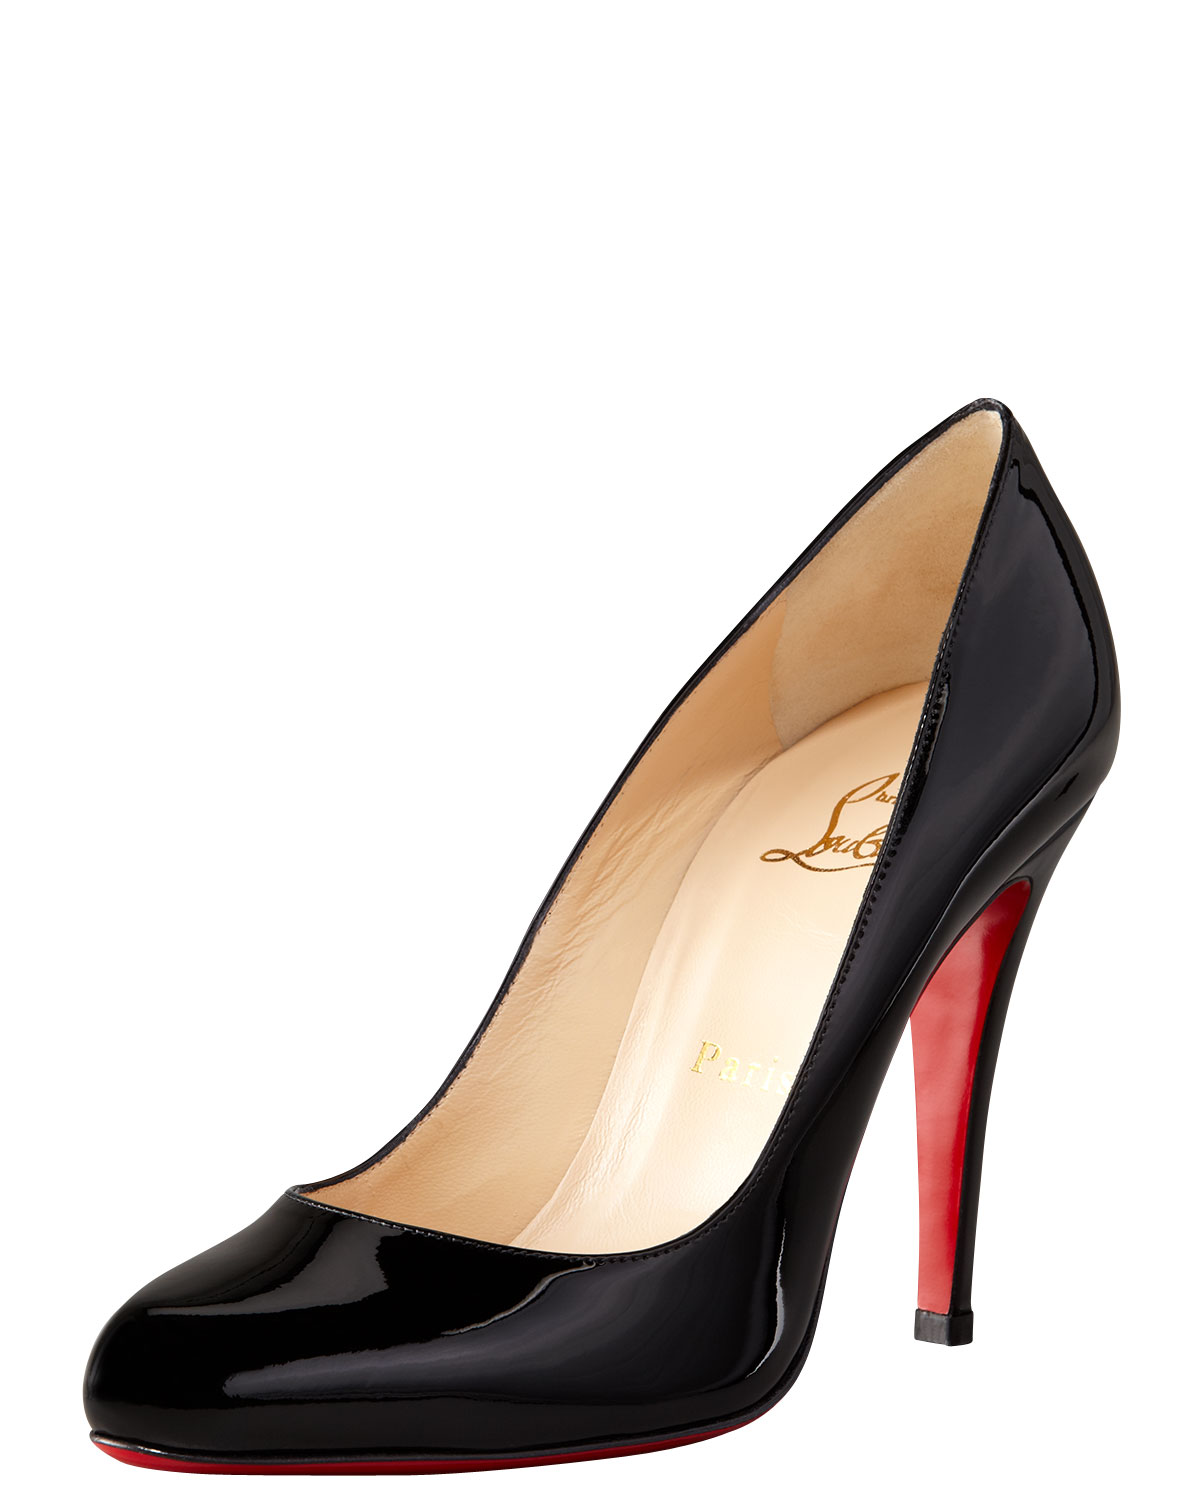 replica louboutin shoes - Christian louboutin Decollette Patent Red Sole Pump in Red (black ...